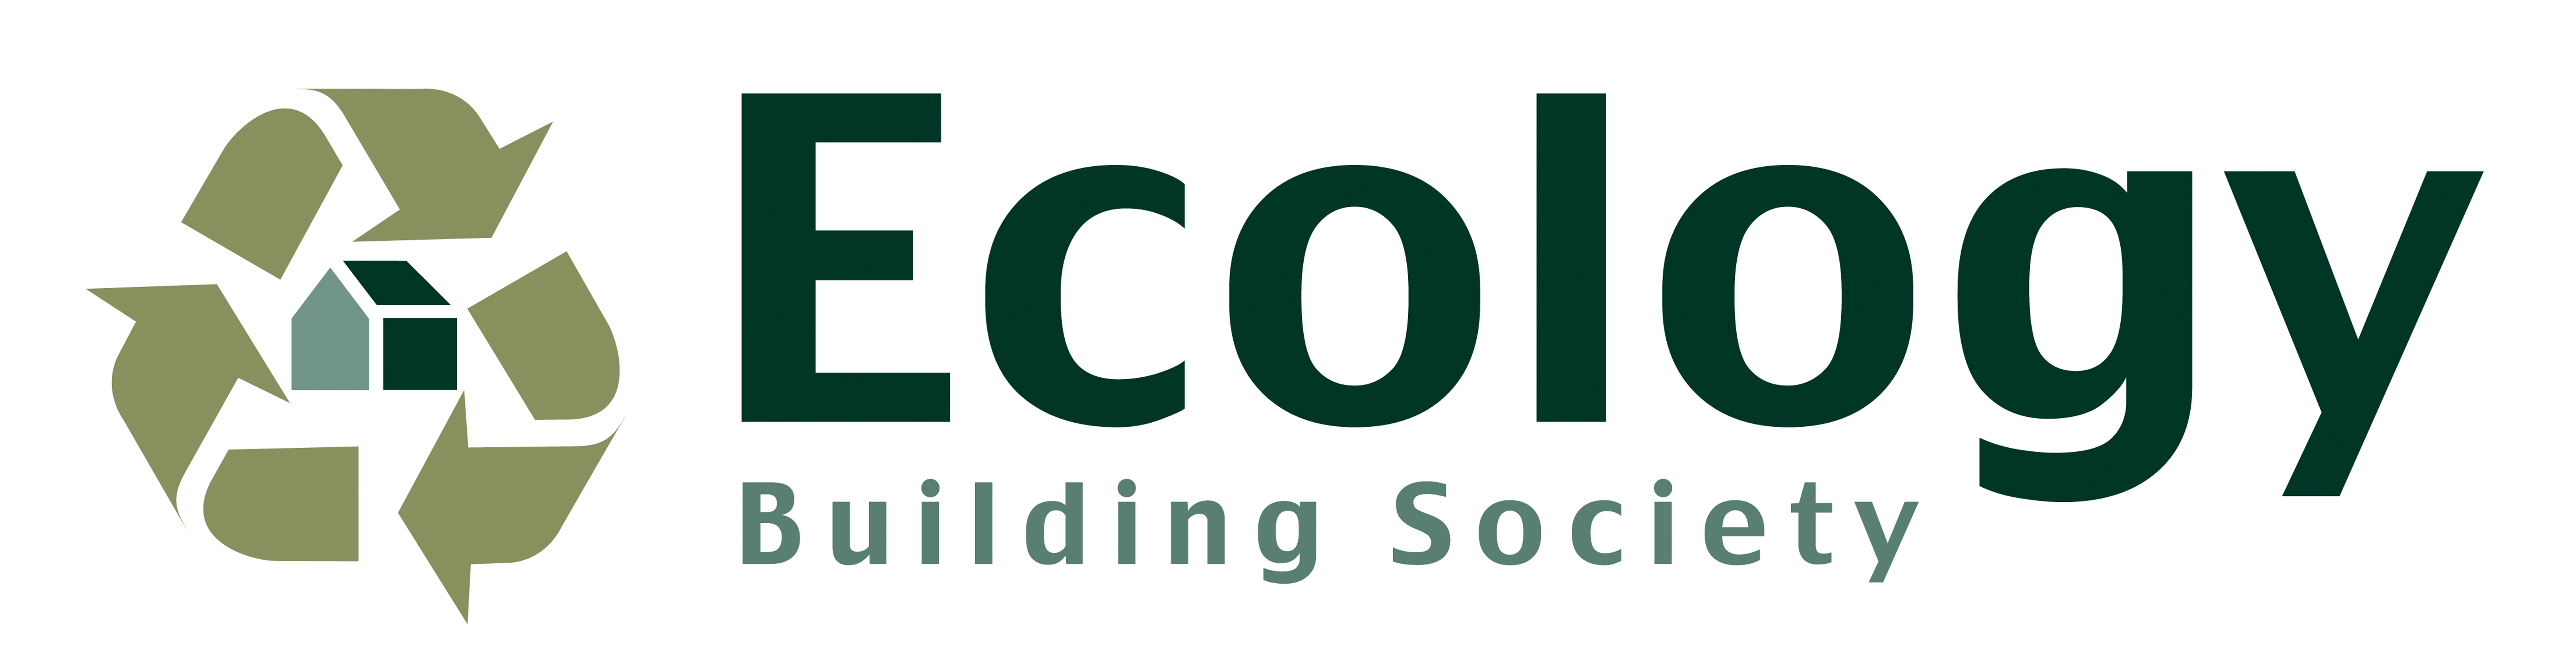 Ecology Building Society - company logo